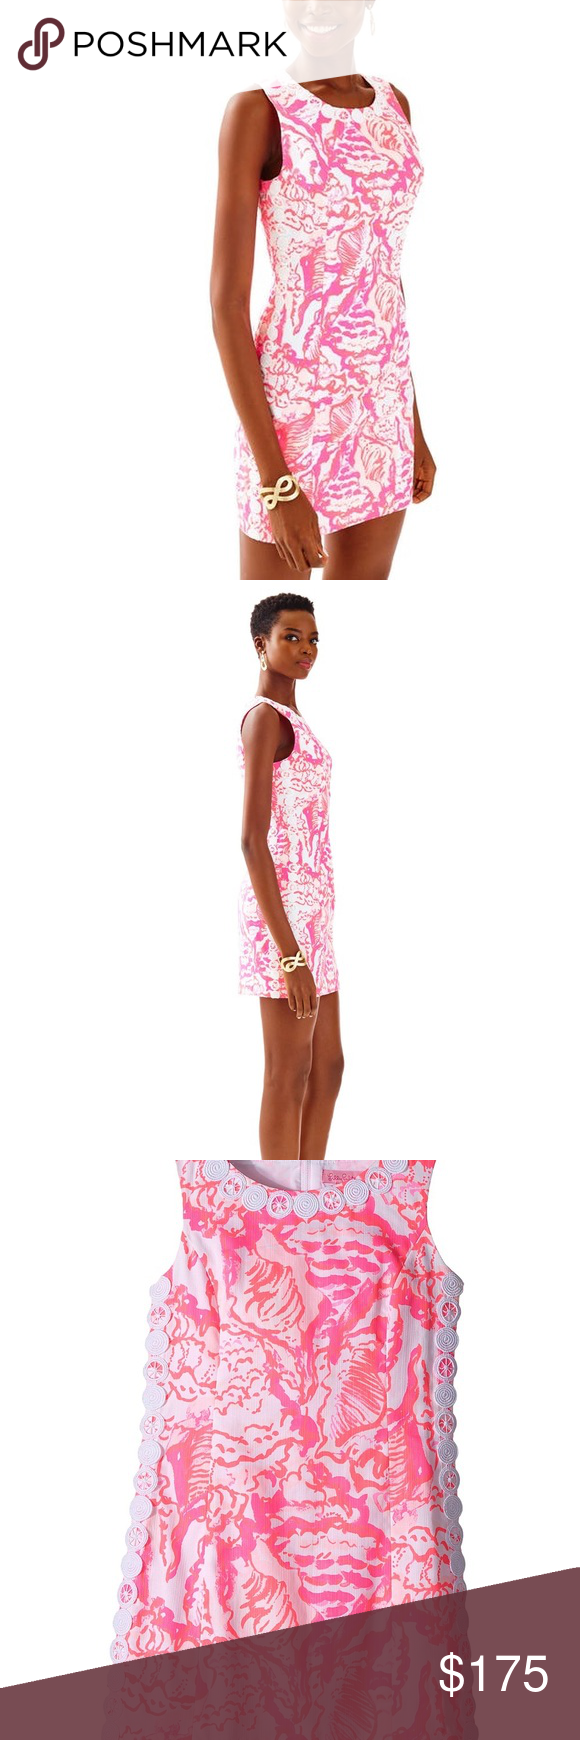 Lilly Pulitzer Mila Shift Dress Boutique